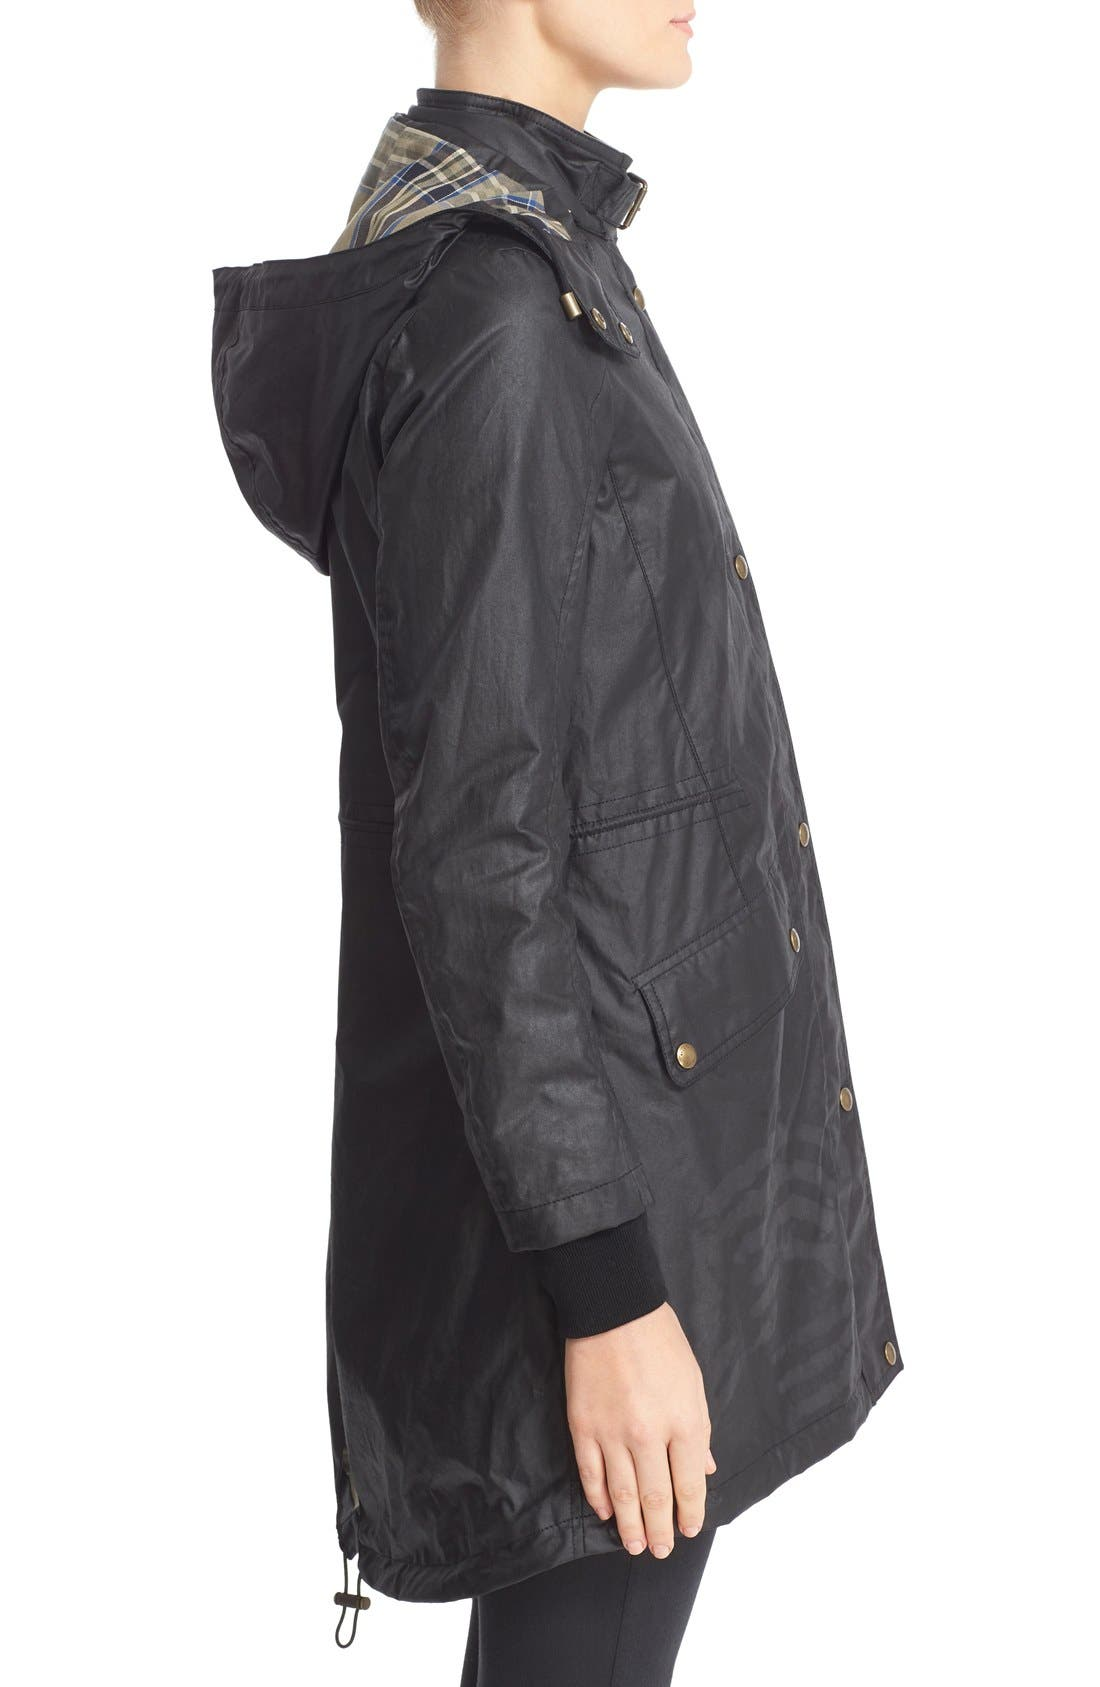 Wembury Waxed Cotton Jacket,                             Alternate thumbnail 5, color,                             001